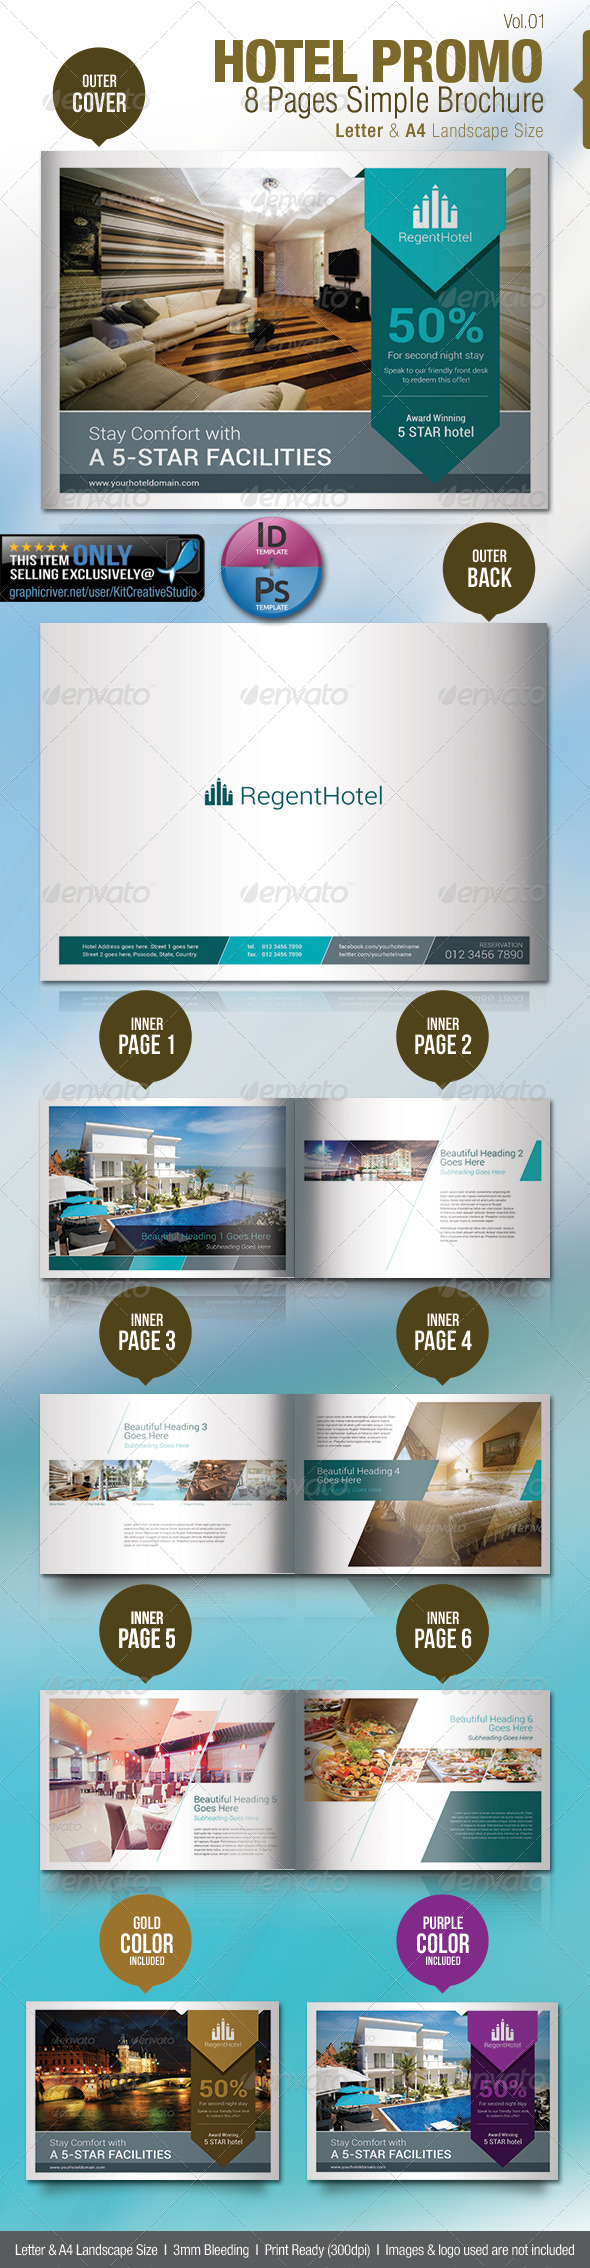 Hotel Promo 8 Pages Simple Brochure - Brochures Print Templates